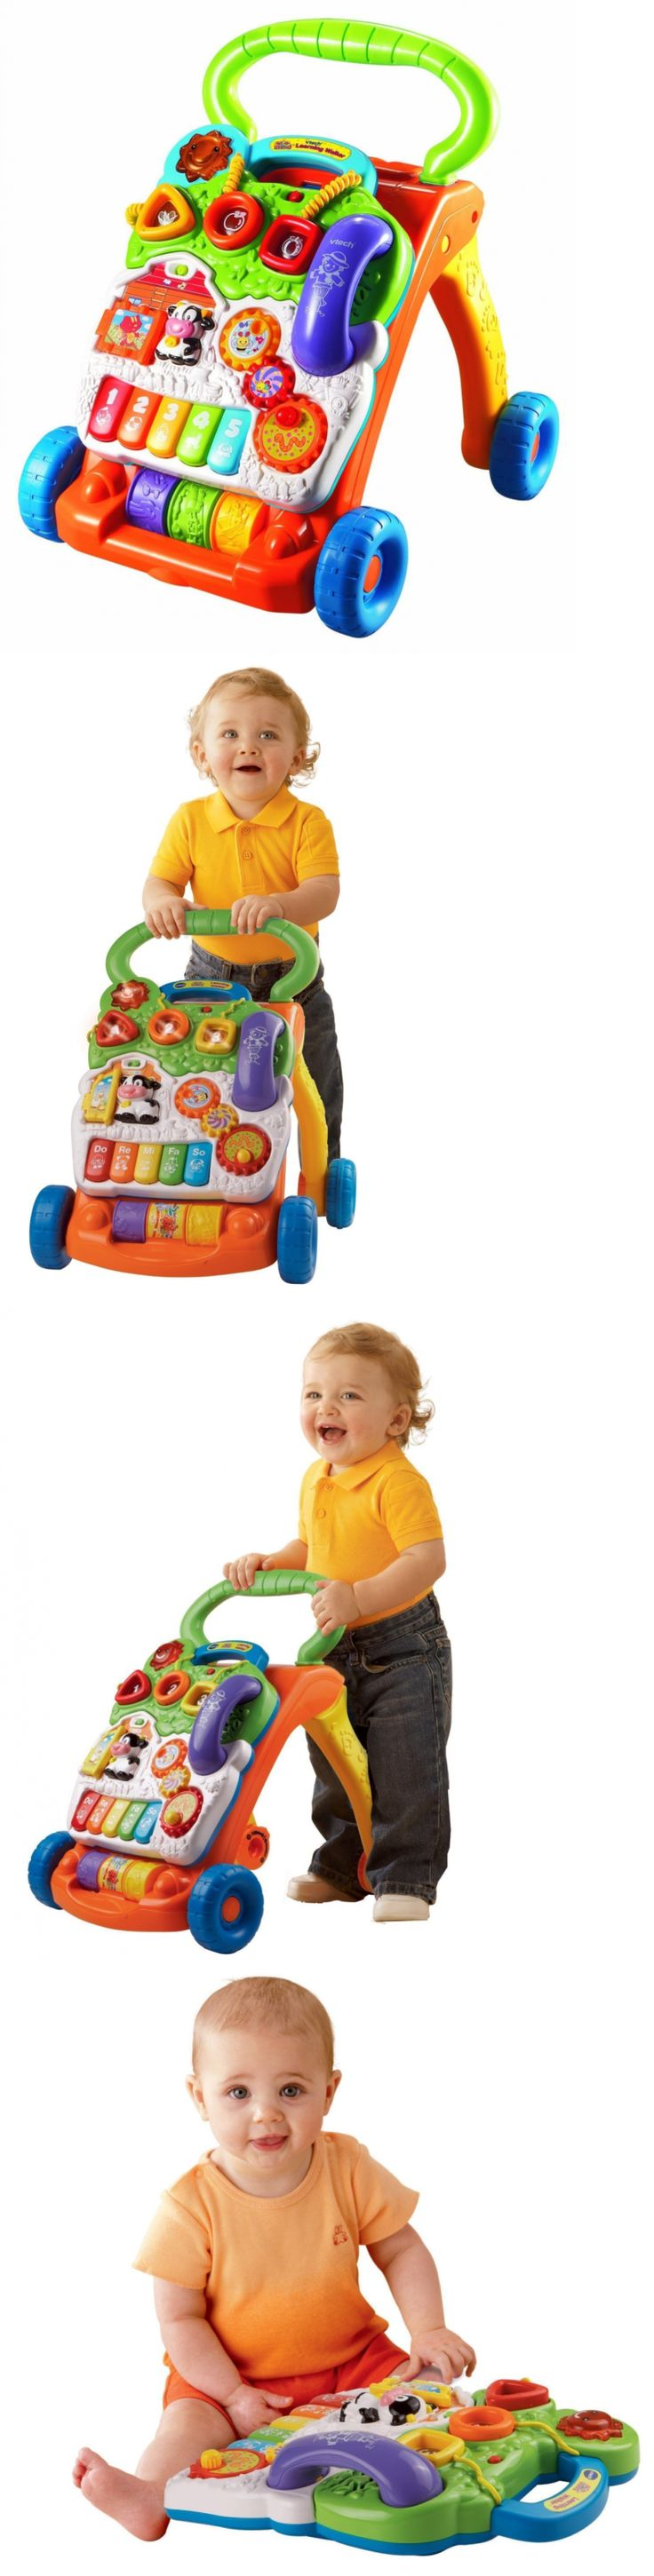 Developmental Baby Toys 100227: Vtech Toys Sit To Stand Learning Walker, Interactive Activity Panel Baby Walker -> BUY IT NOW ONLY: $35.31 on eBay!